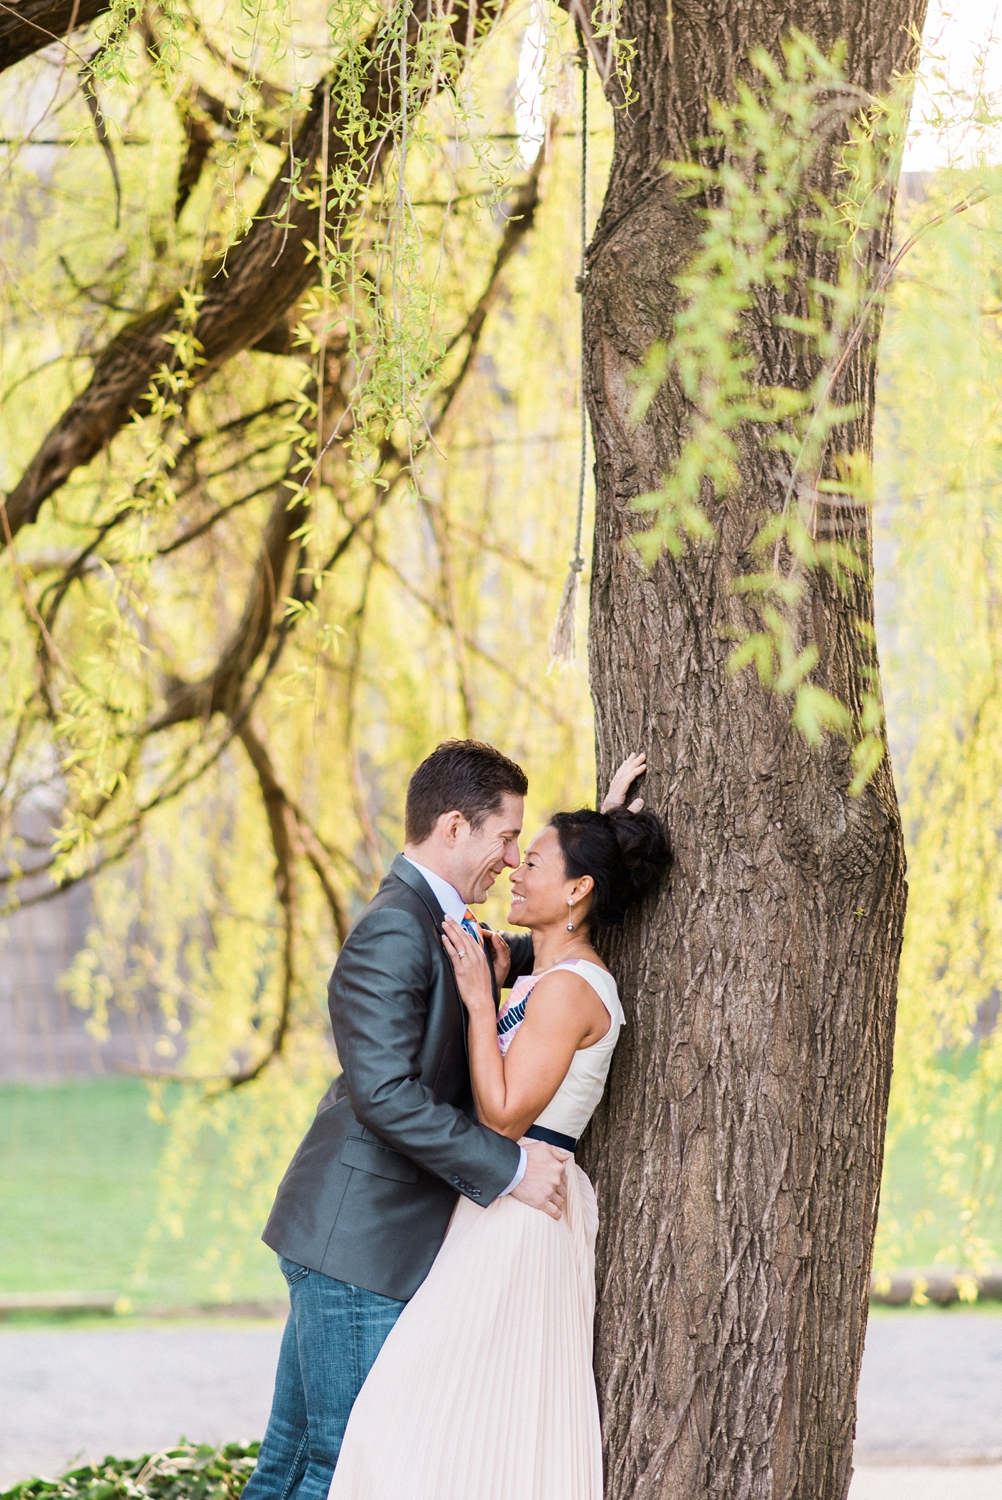 portland-waterfront-engagement-cherry-blossom-cathedral-park-sokhorn-jay-272_cr.jpg